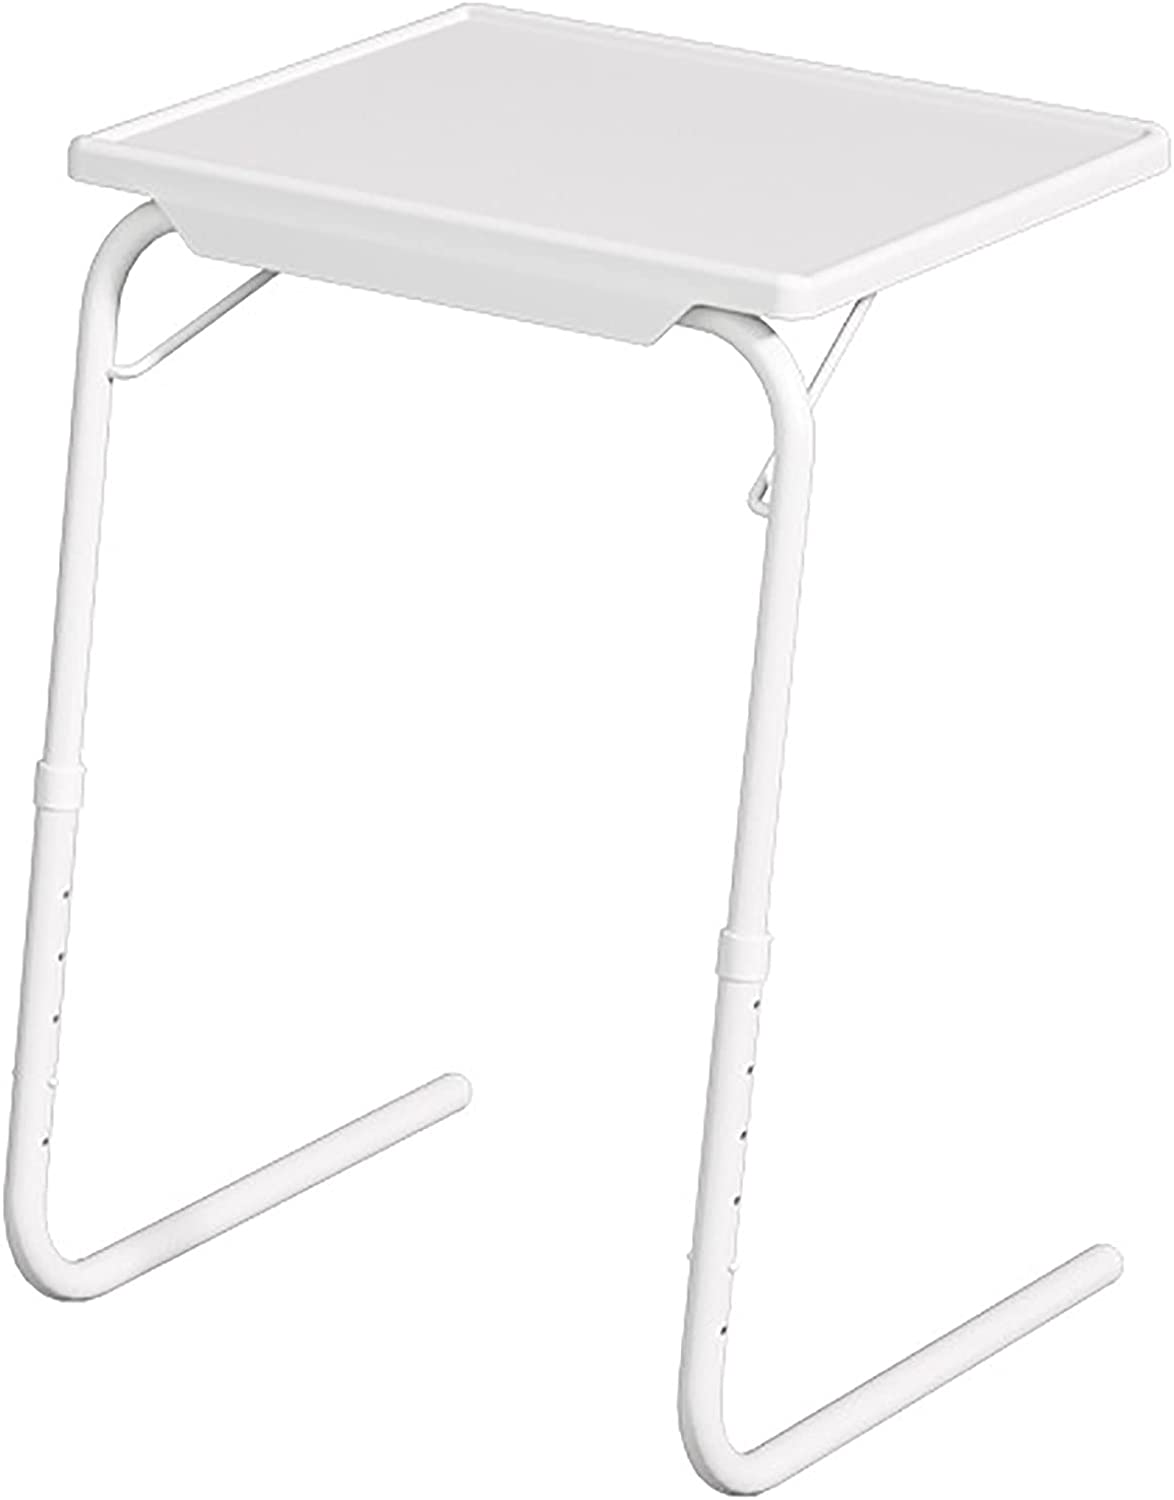 Mail order White tv Trays Table for Eating Dinner Laptop Work Tray Max 59% OFF Folding